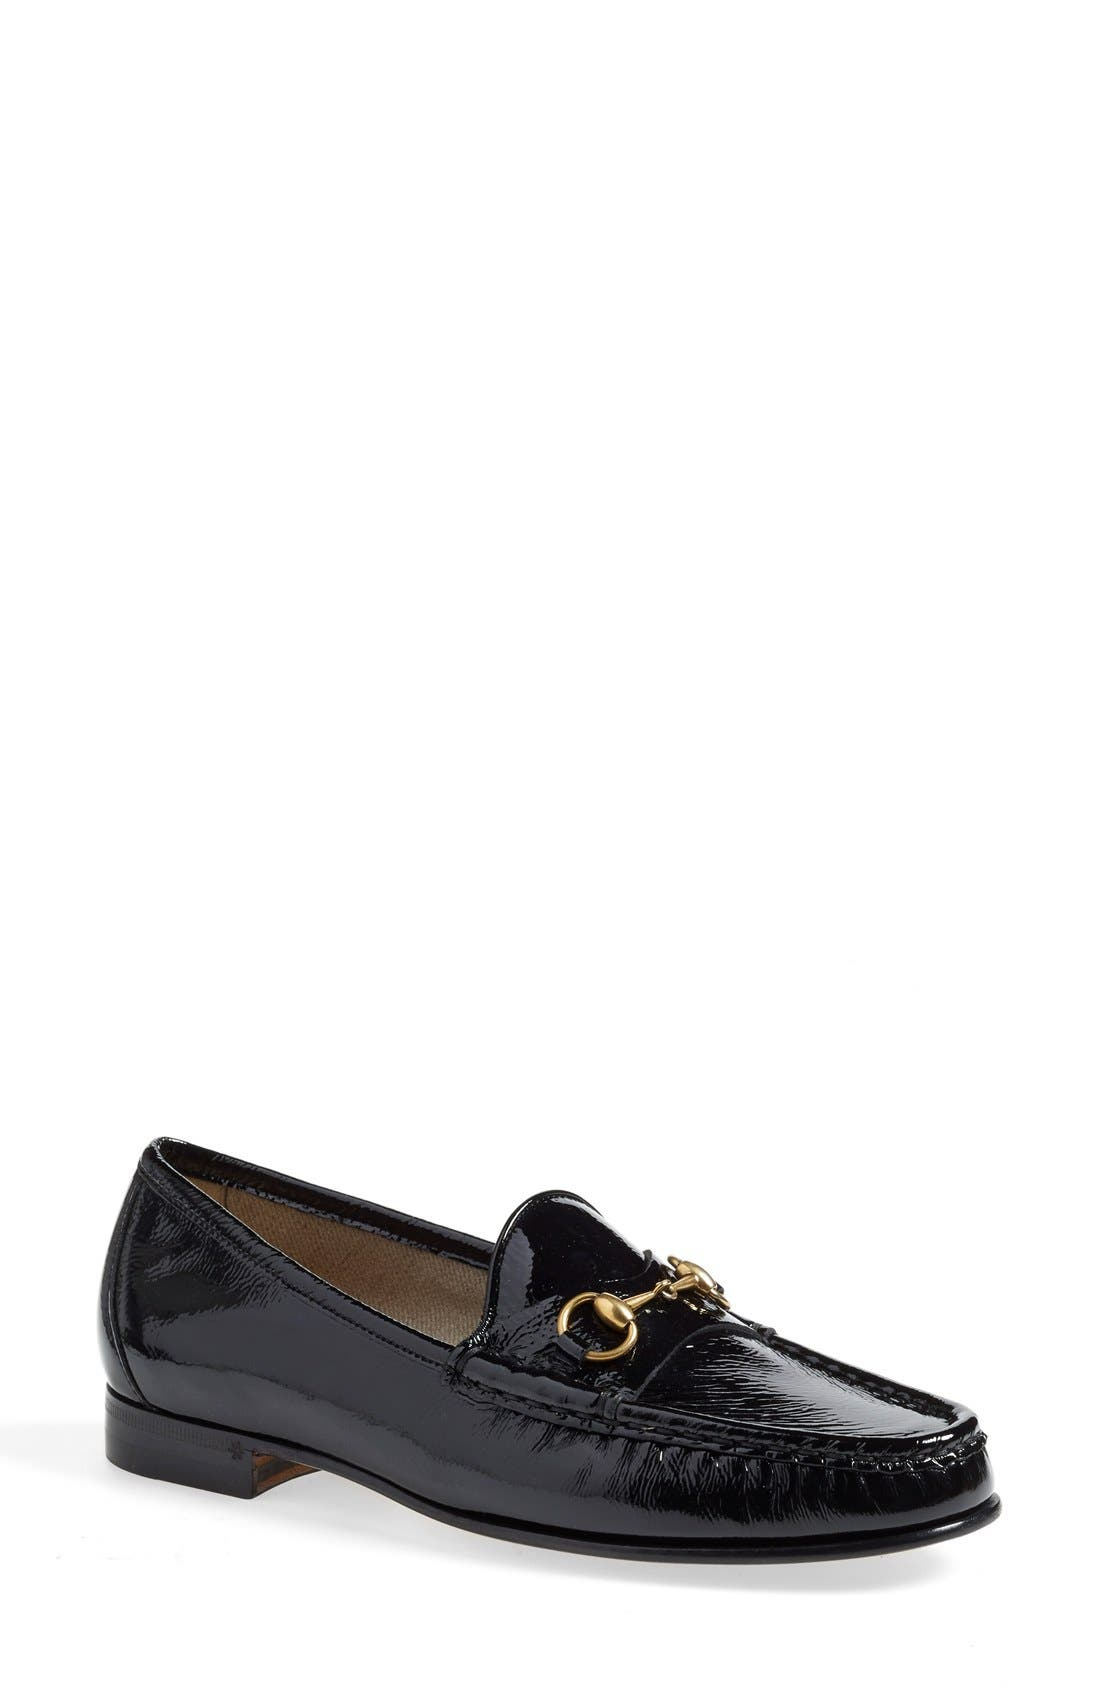 Main Image - Gucci 'Frame' Loafer (Women)